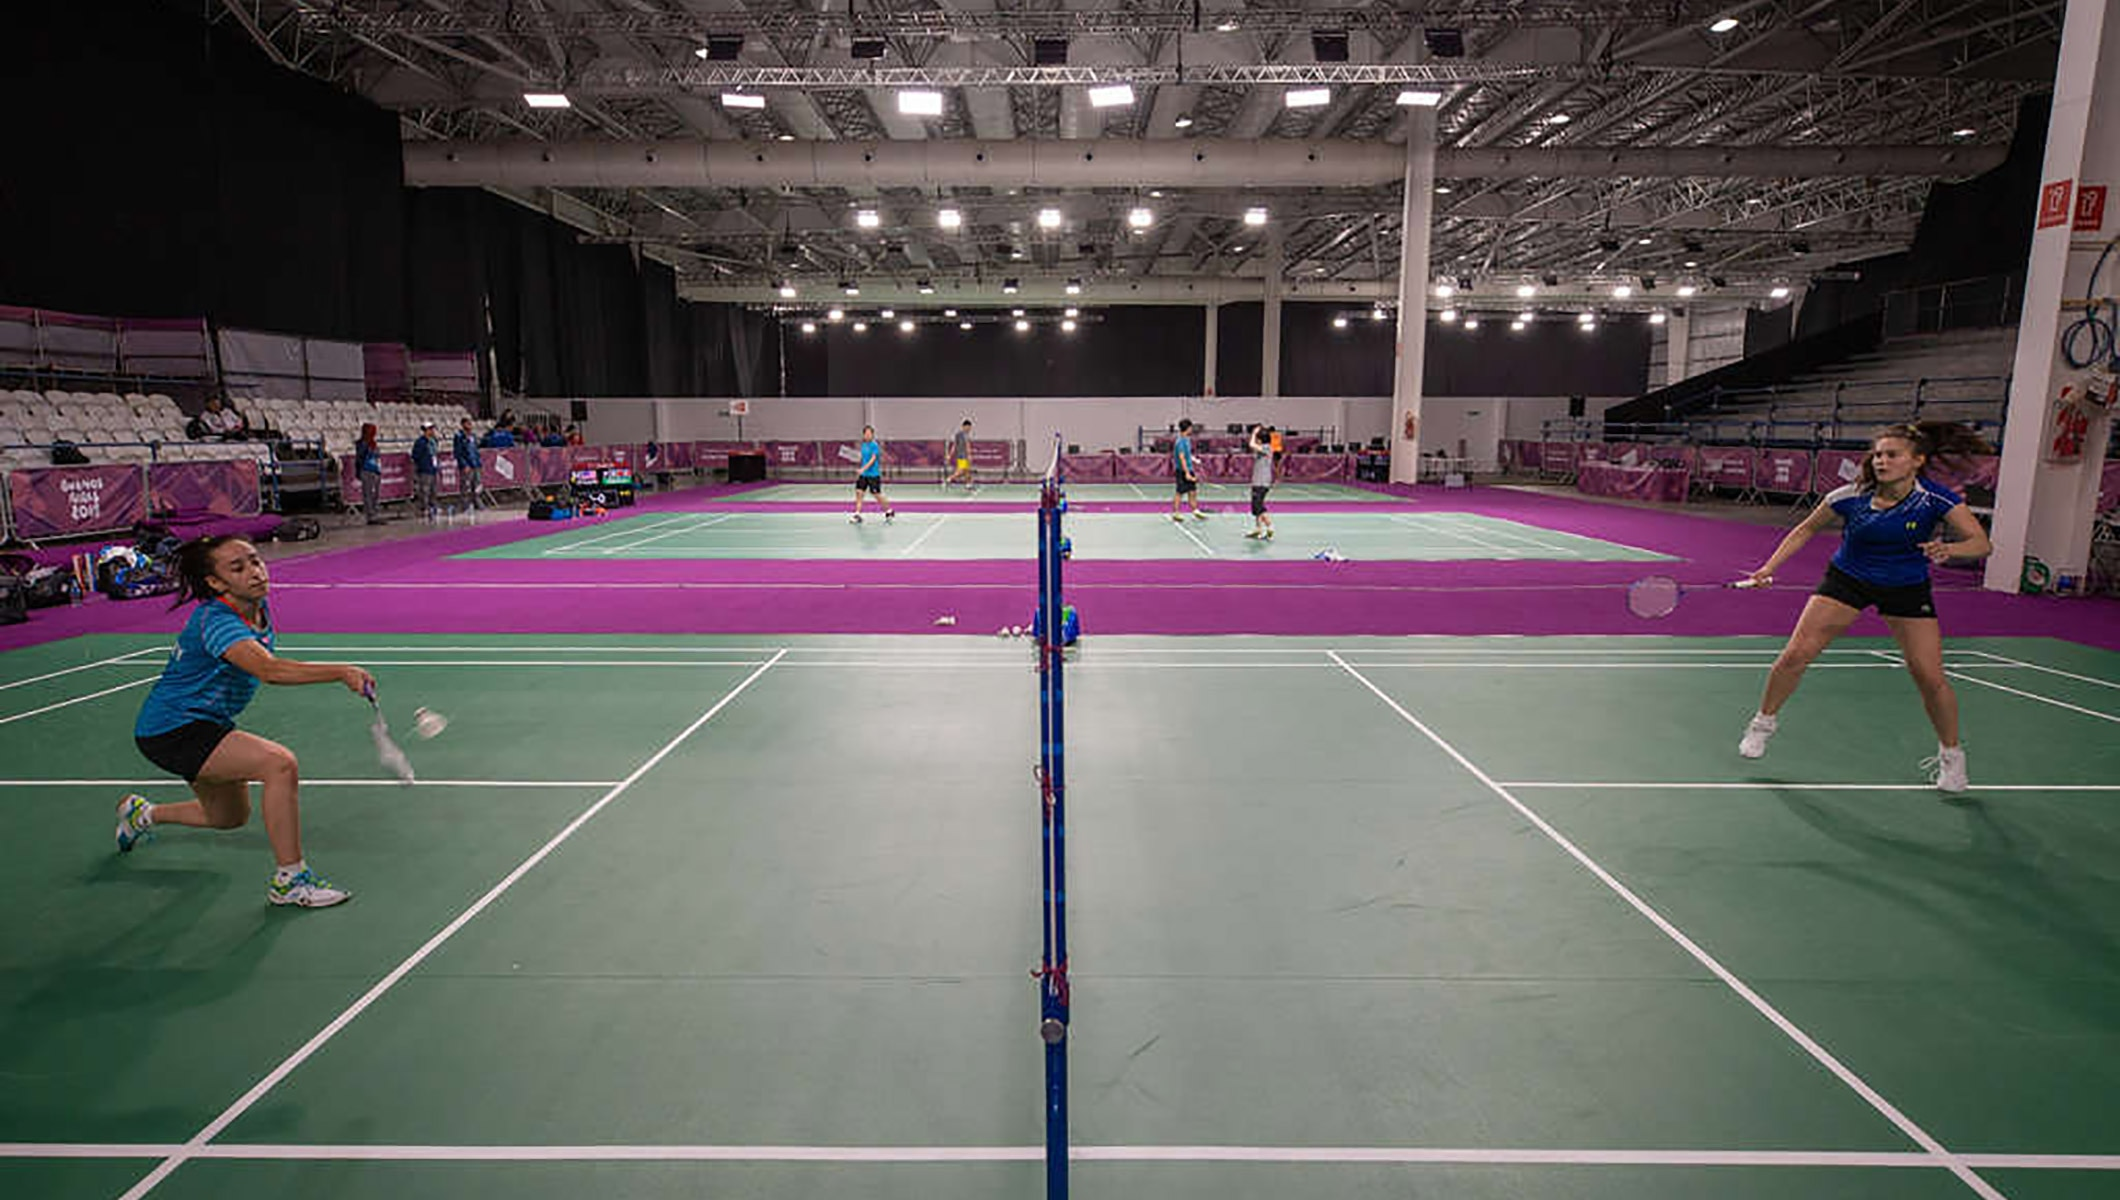 Badminton shake-up fosters shuttle diplomacy - Olympic News